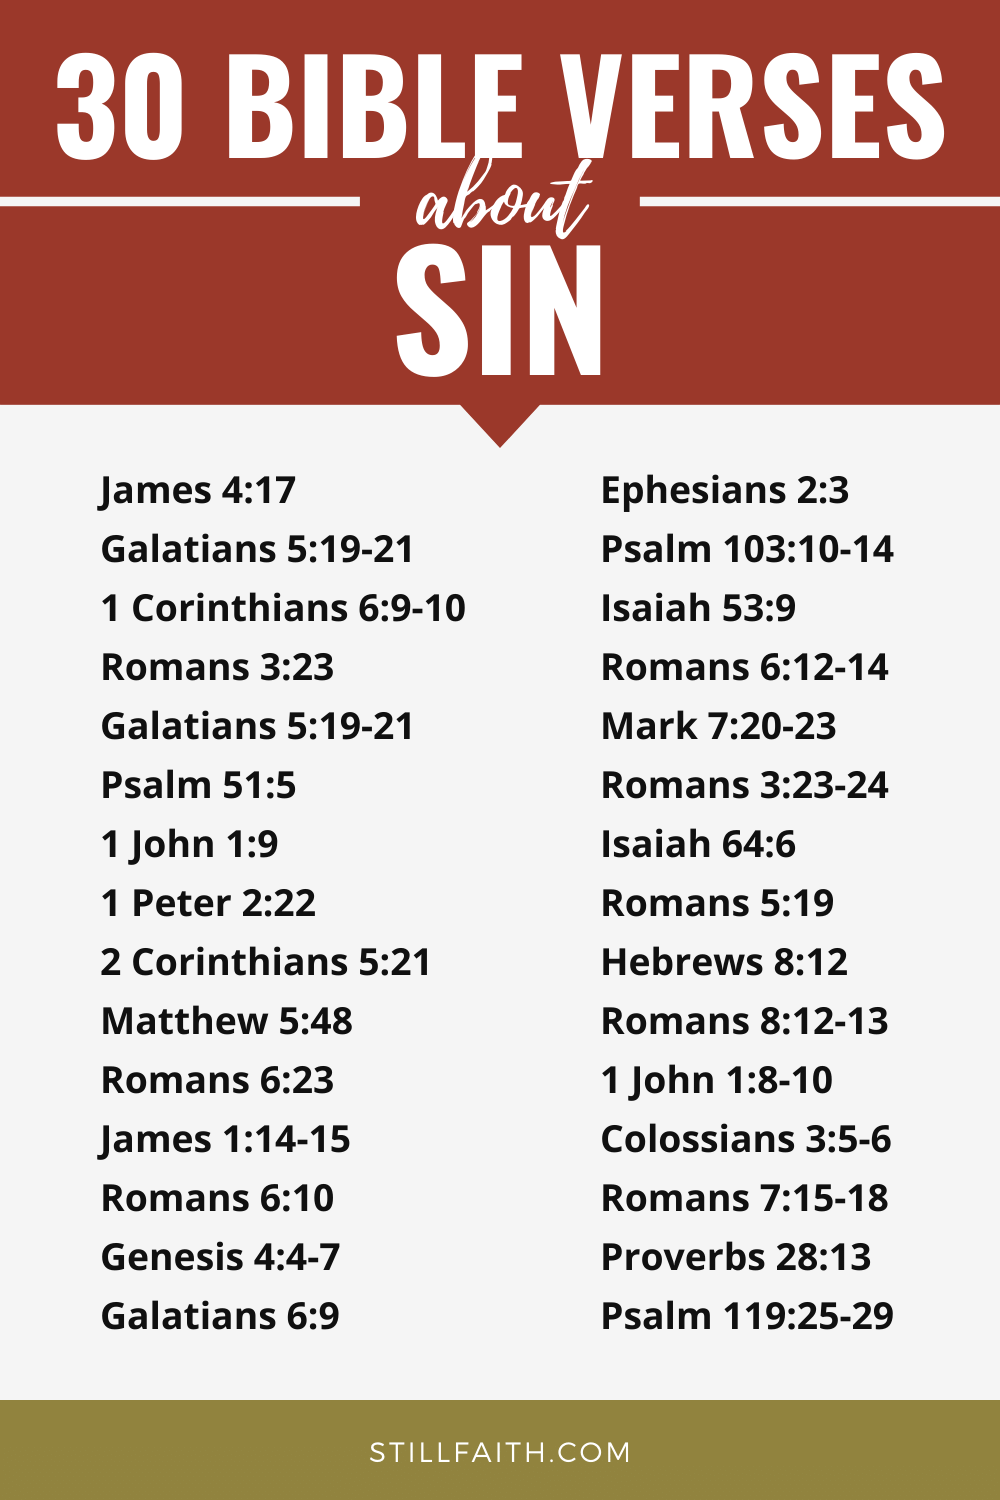 293 Bible Verses about Sin